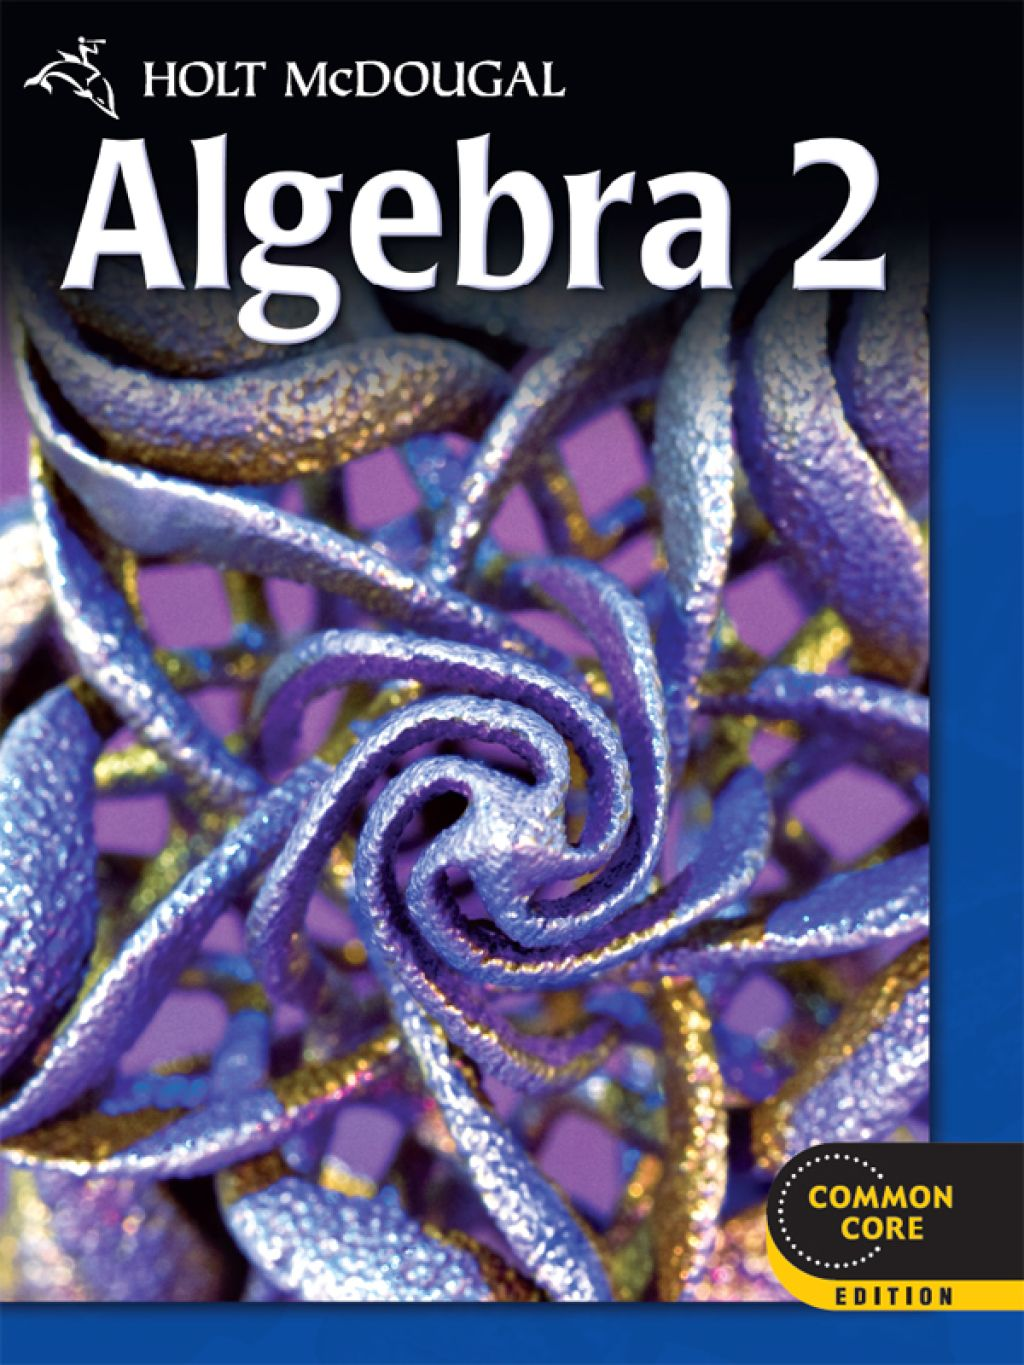 Holt Mcdougal Algebra 2 Ebook Rental